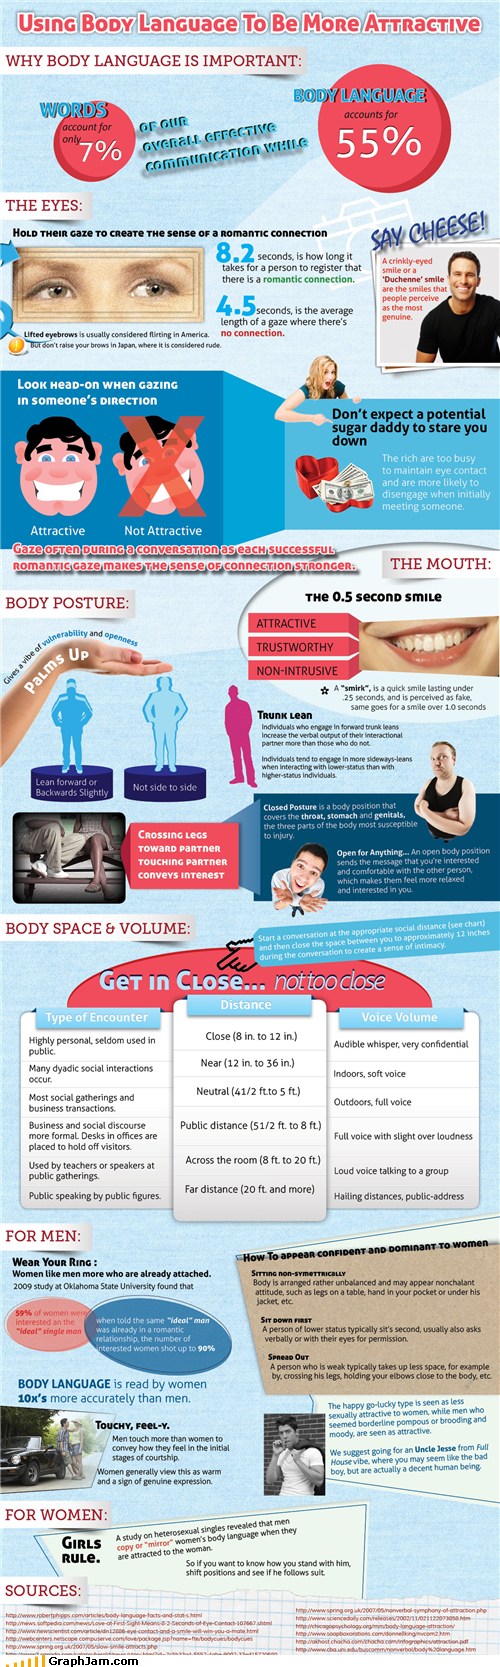 attractive body language help infographic - 5072759040